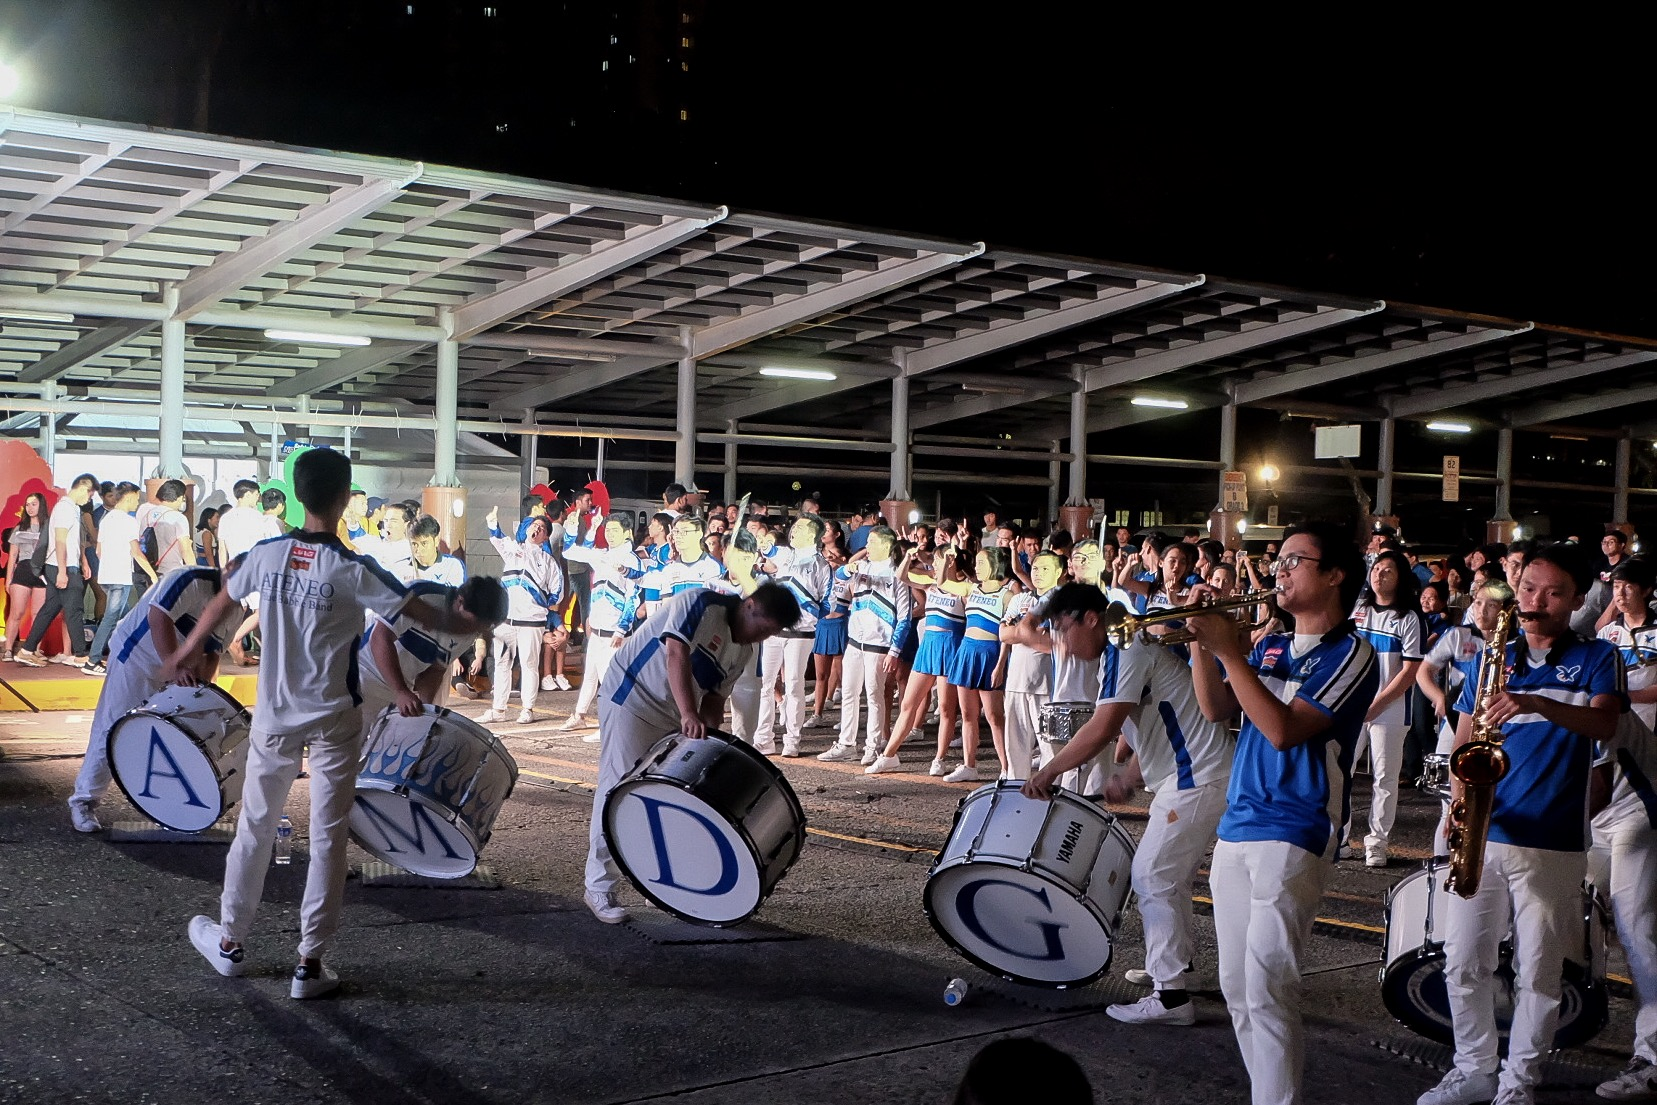 AMDG. The Ateneo Blue Babble Battalion makes fans of the blue and white feel at home. Photo by Beatrice Go/Rappler